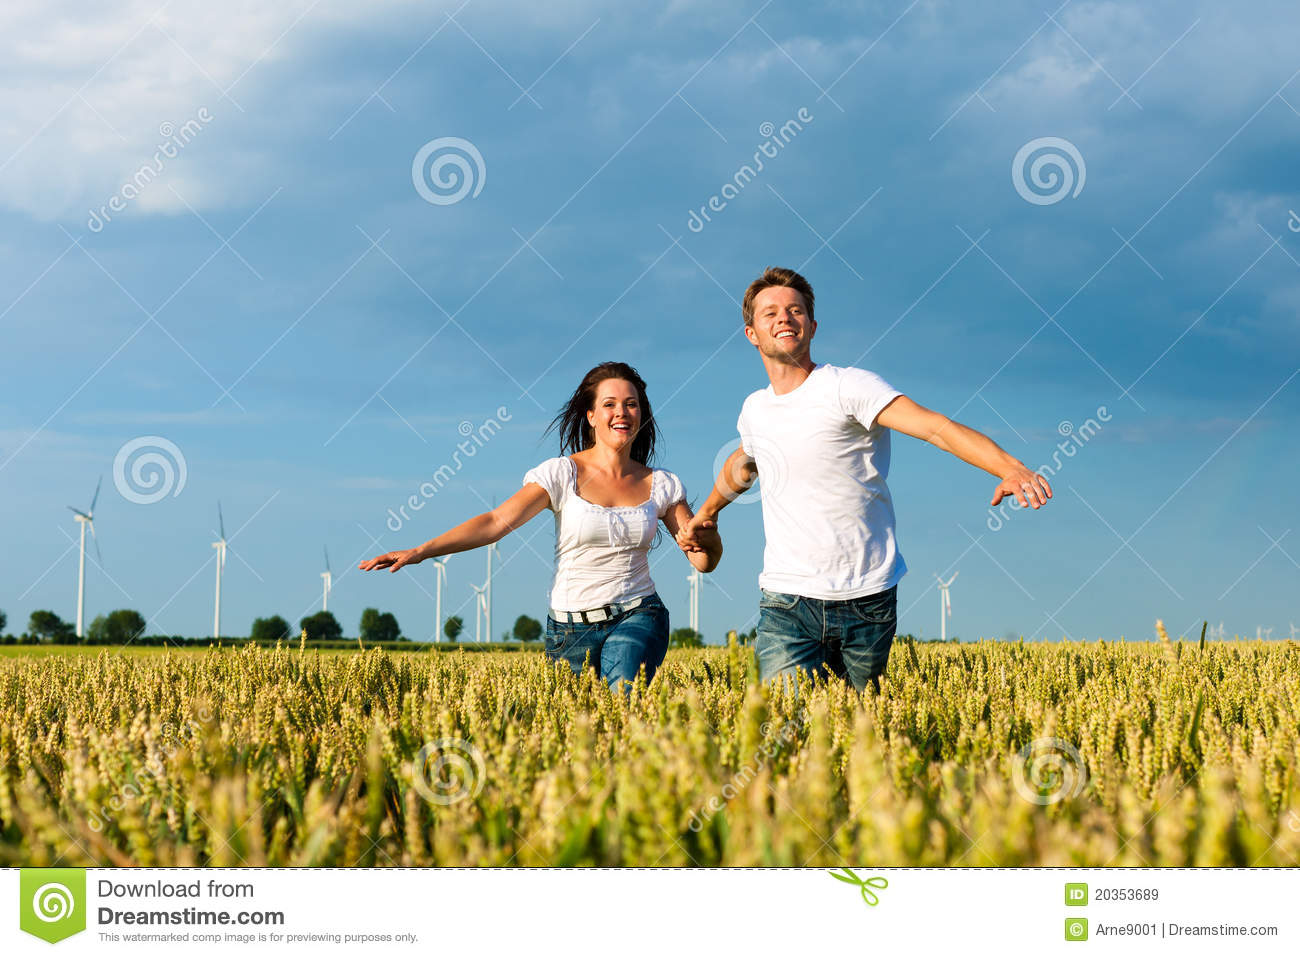 grainfield women Find the best free stock images about grain field download all photos and use  them even  woman standing in a field red petal flower close-up of wheat.